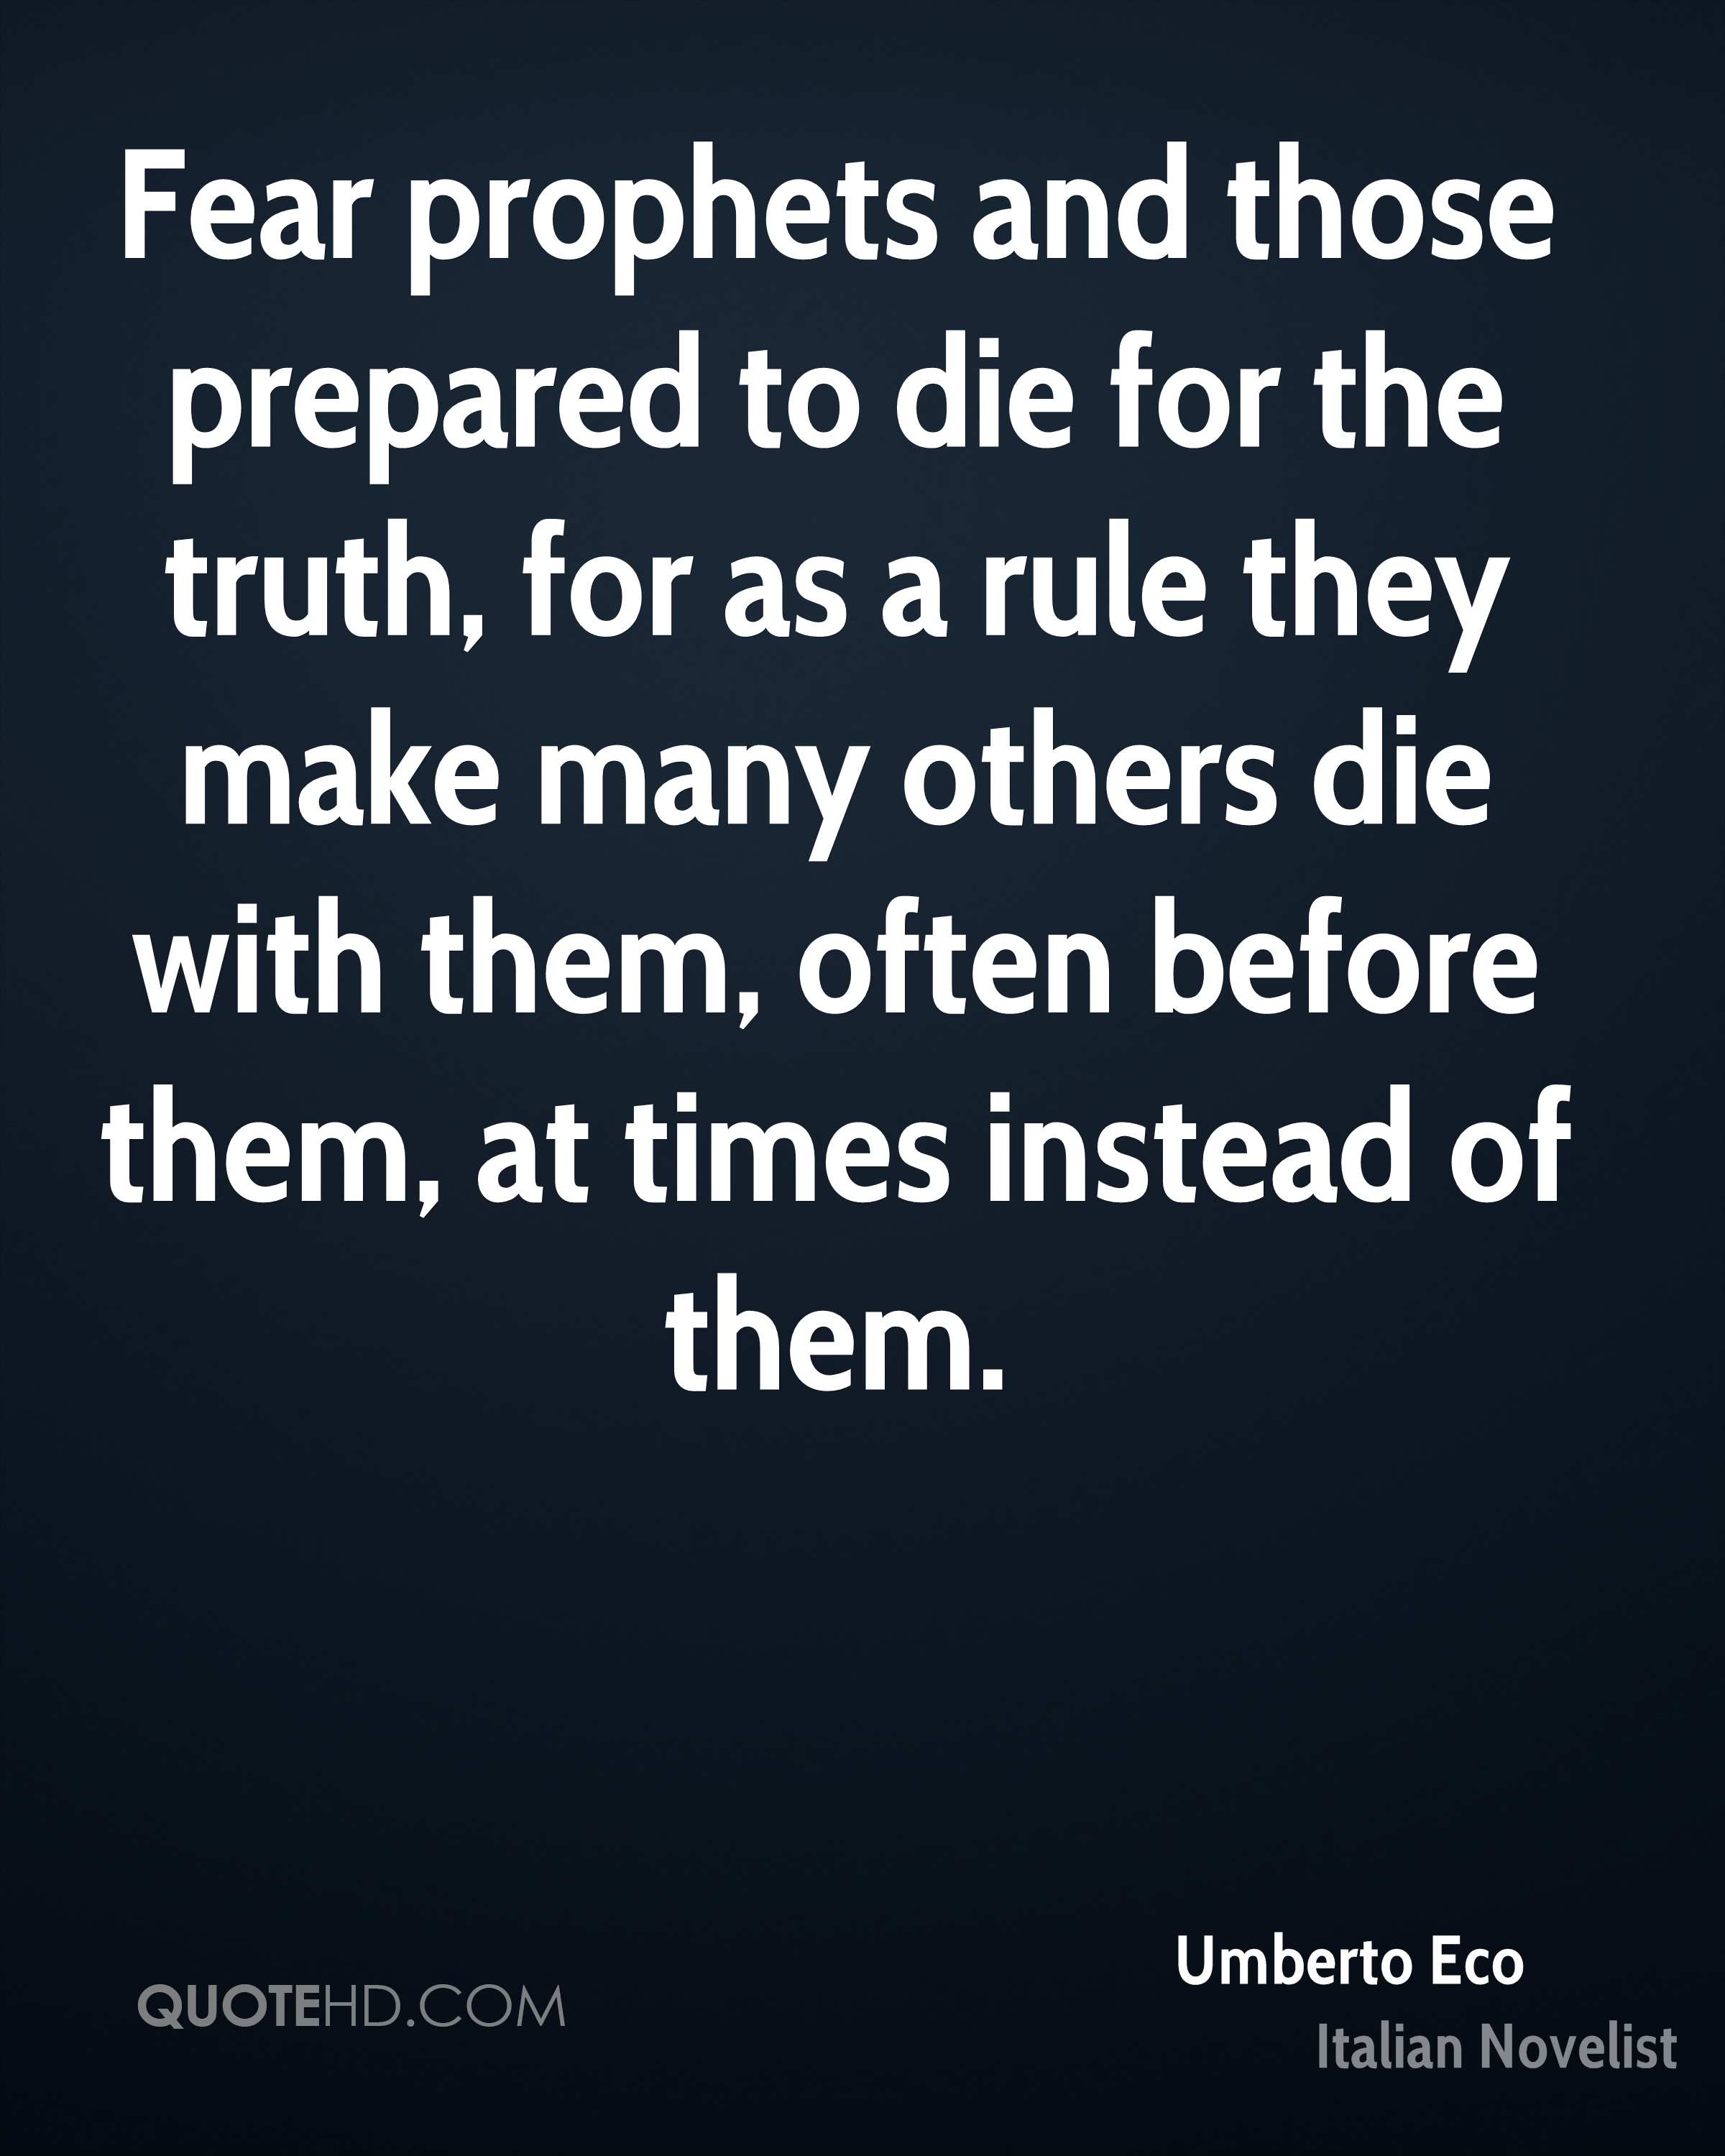 Fear prophets and those prepared to die for the truth, for as a rule they make many others die with them, often before them, at times instead of them.